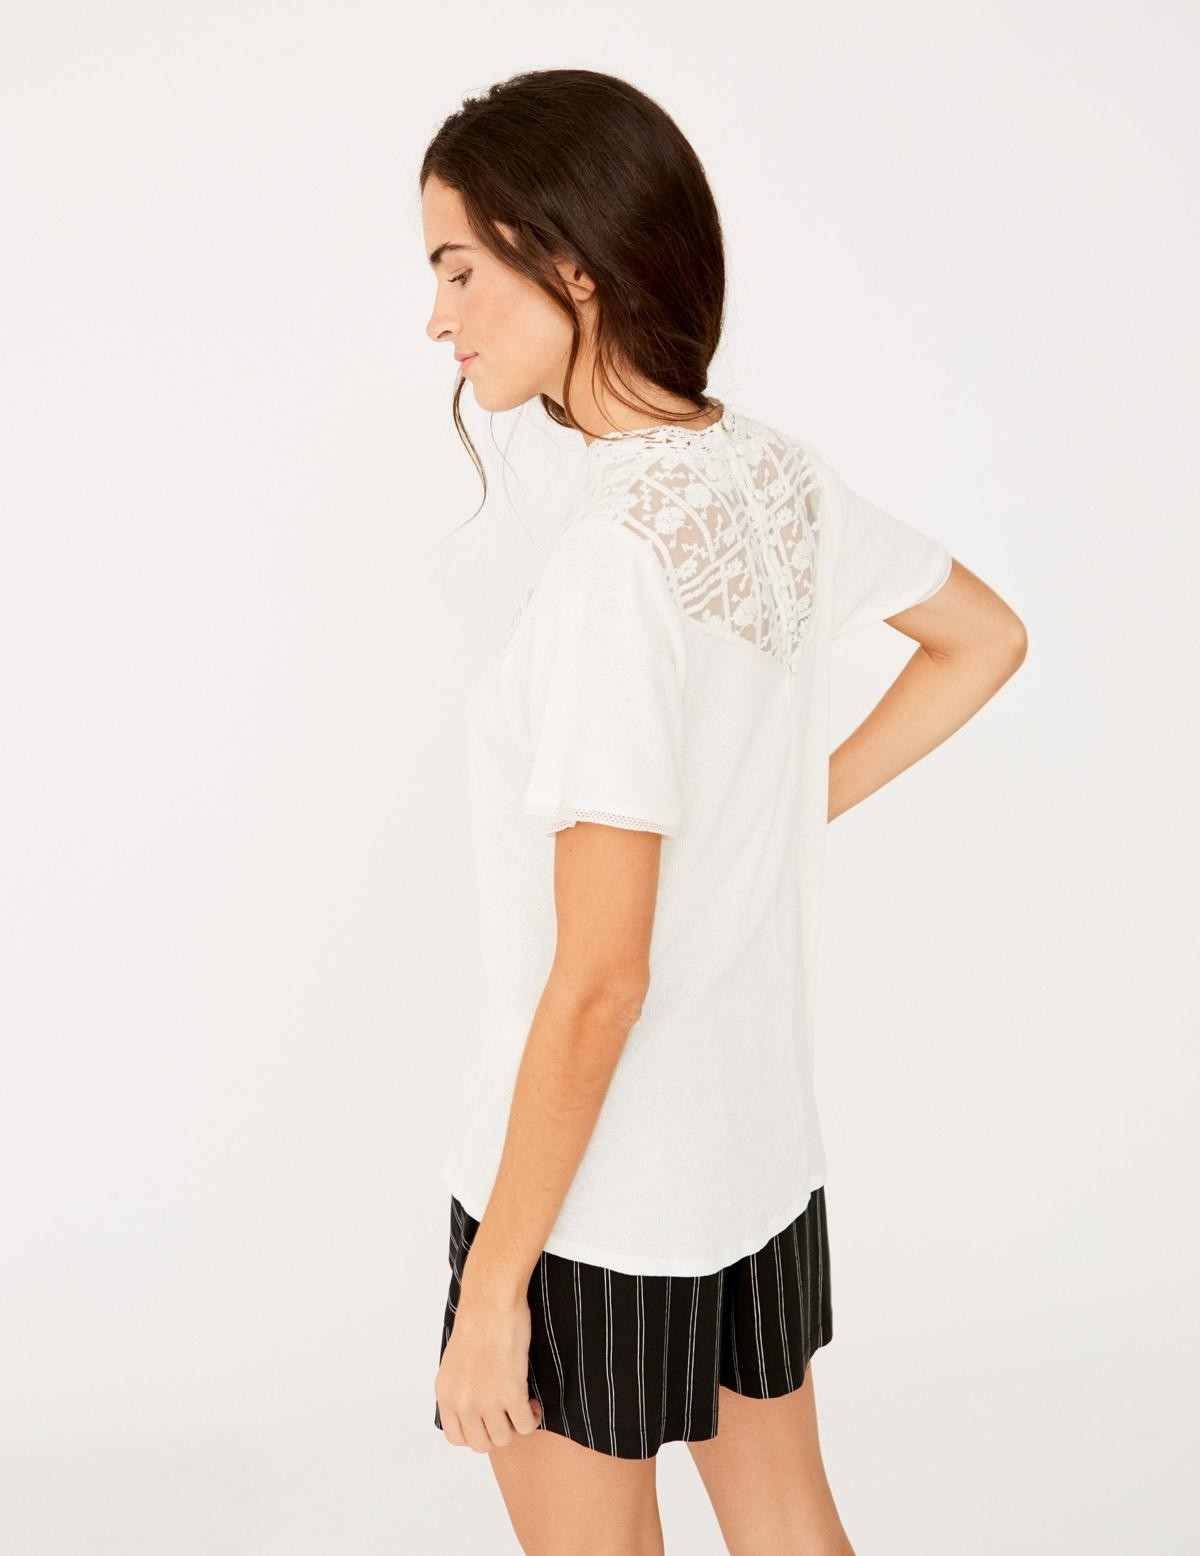 A-line t-shirt with lace edging - Item1